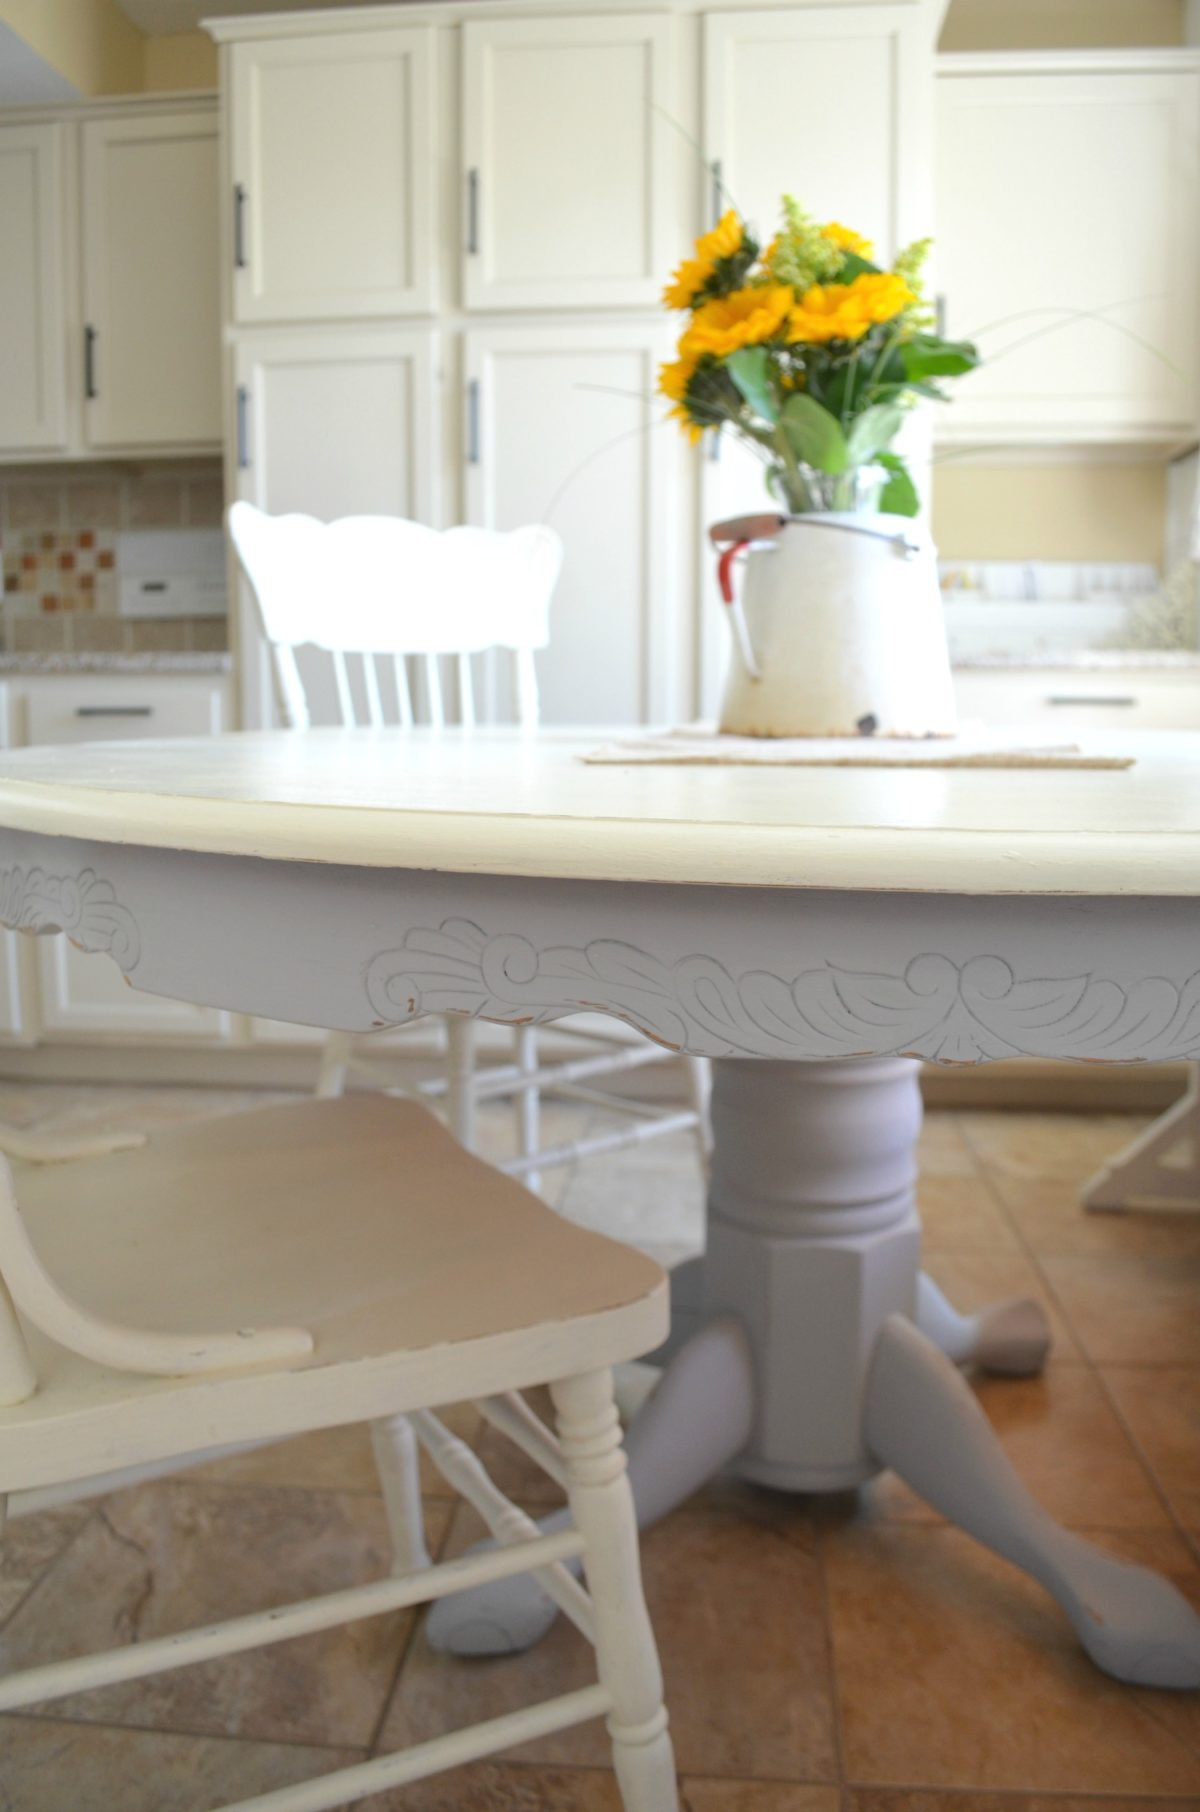 Diy dining table makeover - Diy Chalk Painted Farmhouse Style Table